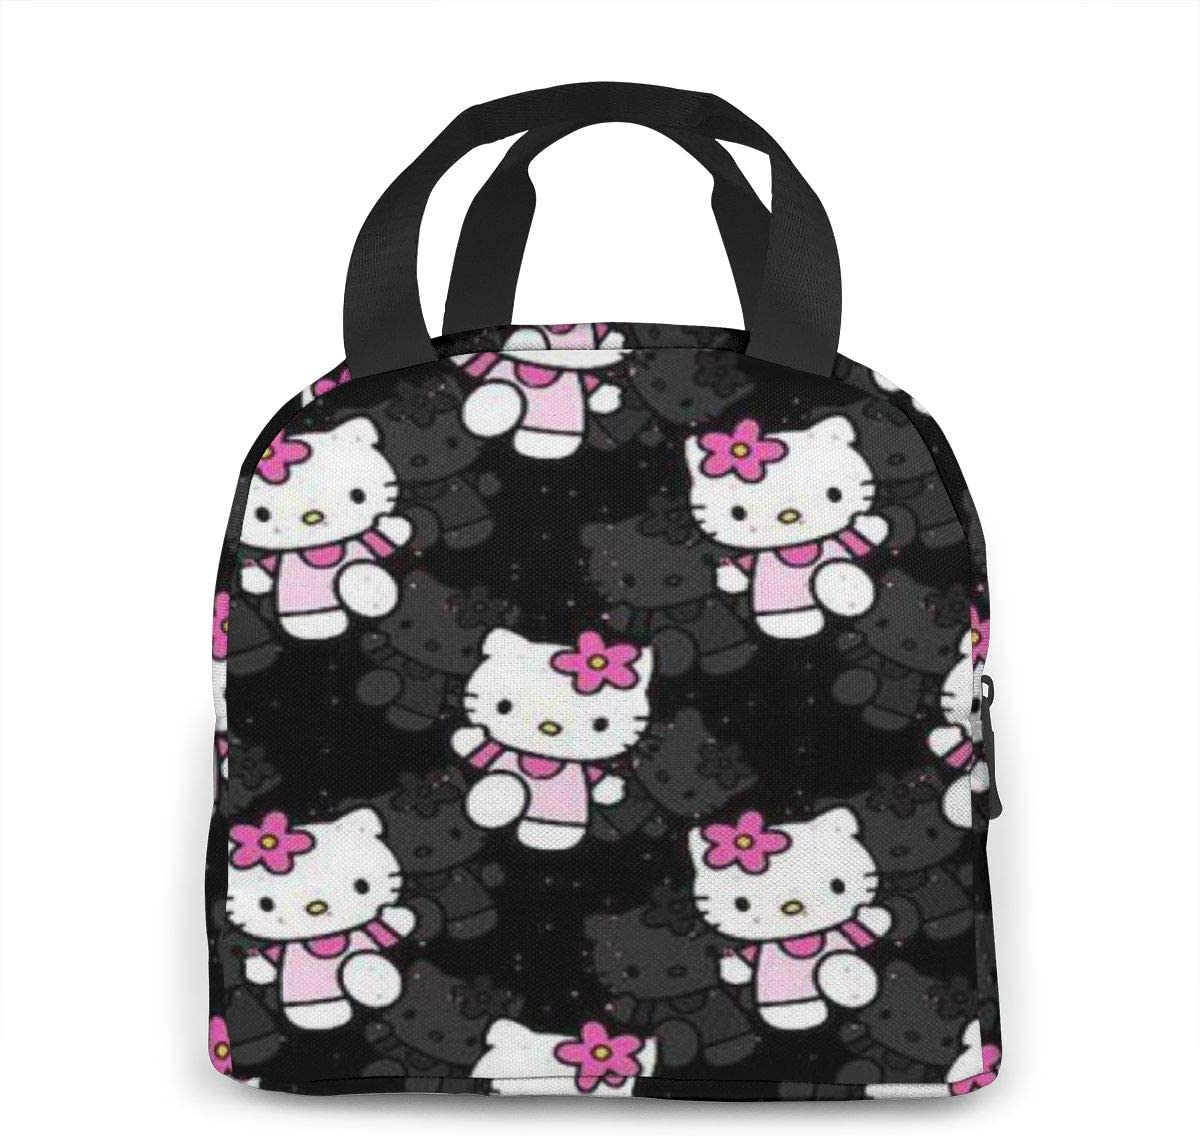 Women Travel Duffel Bag Hello Kitty Handbags weekend trip tote Luggage Shoulder